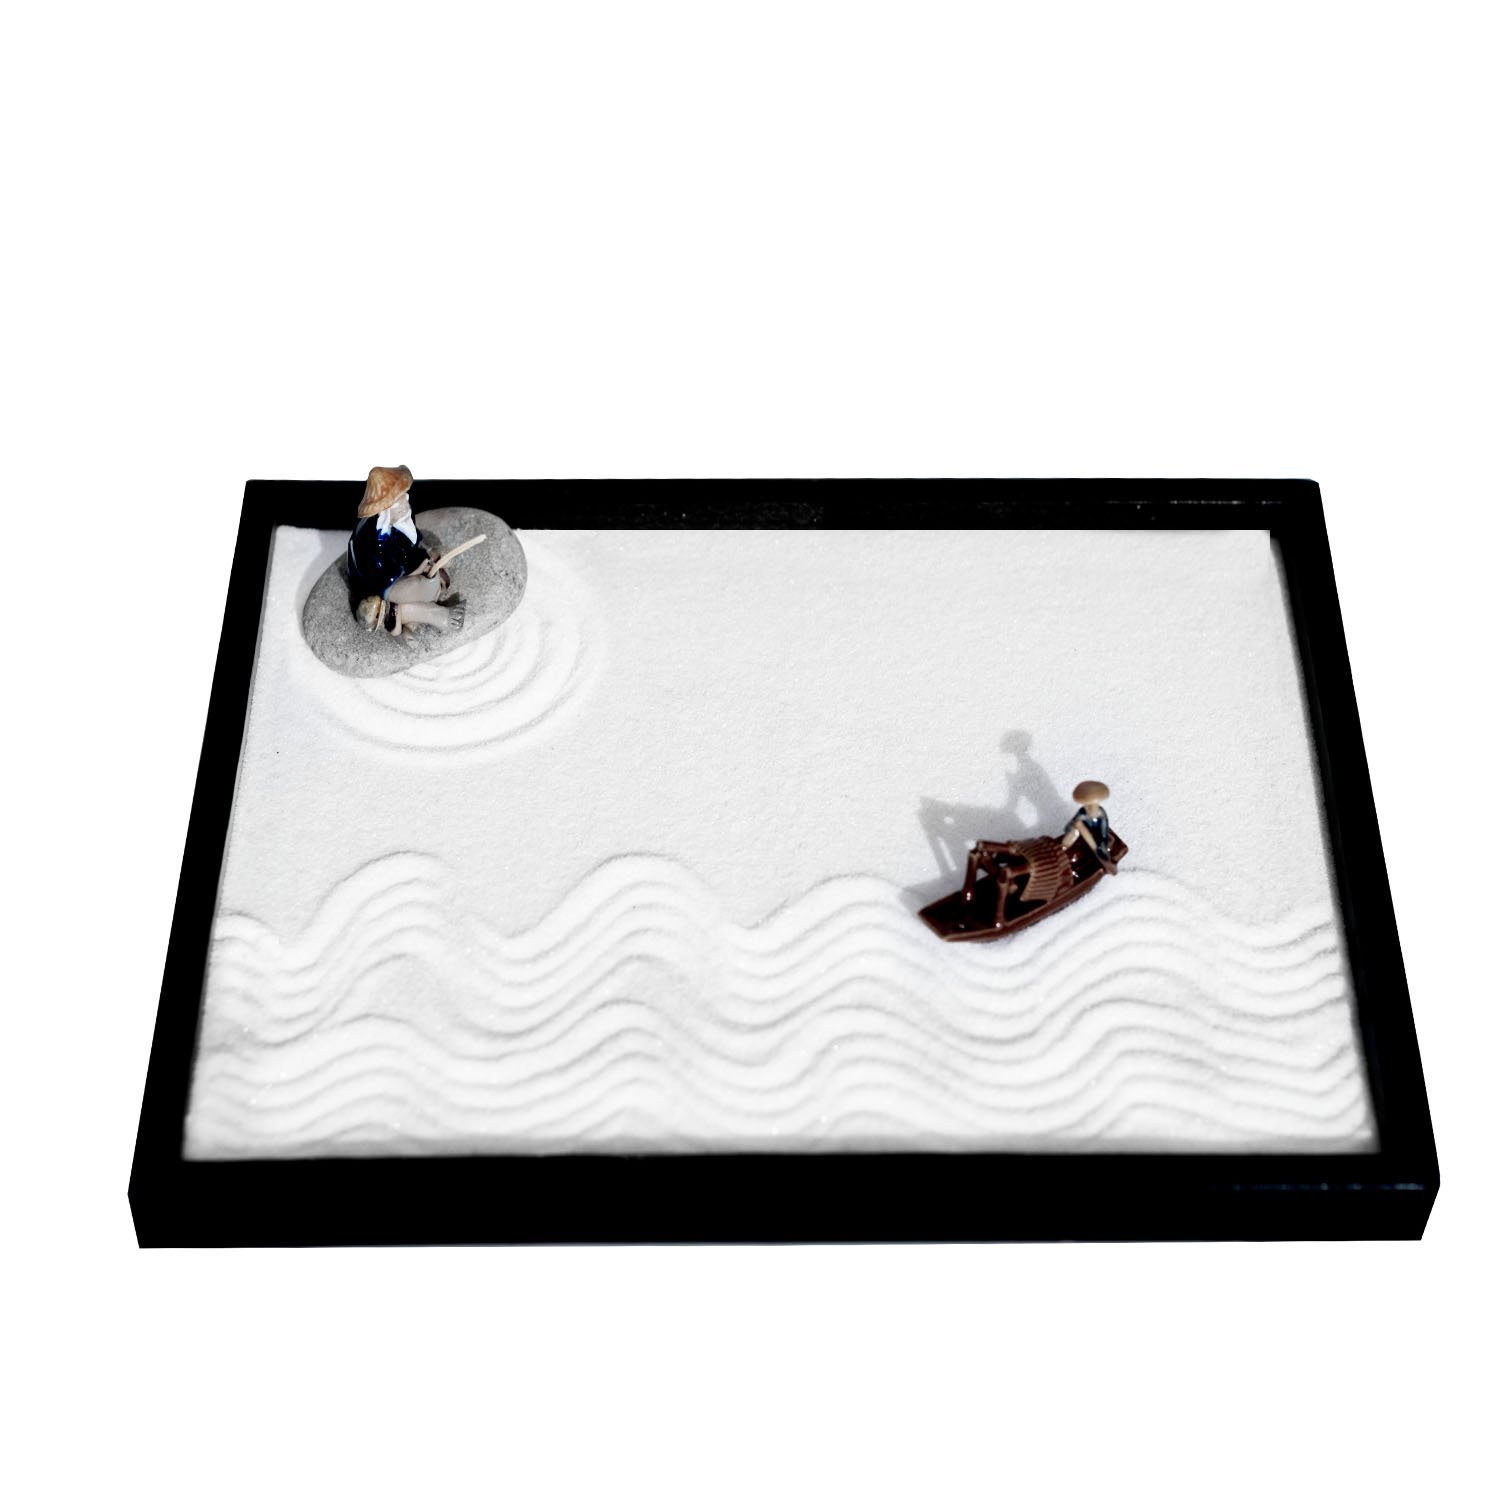 ICNBUYS Zen Garden Fisher Men Set with Free Rake Sand Pushing Pen and Bamboo Drawing Pen Base Tray Dimensions 10 x 7 x 0.4 inches